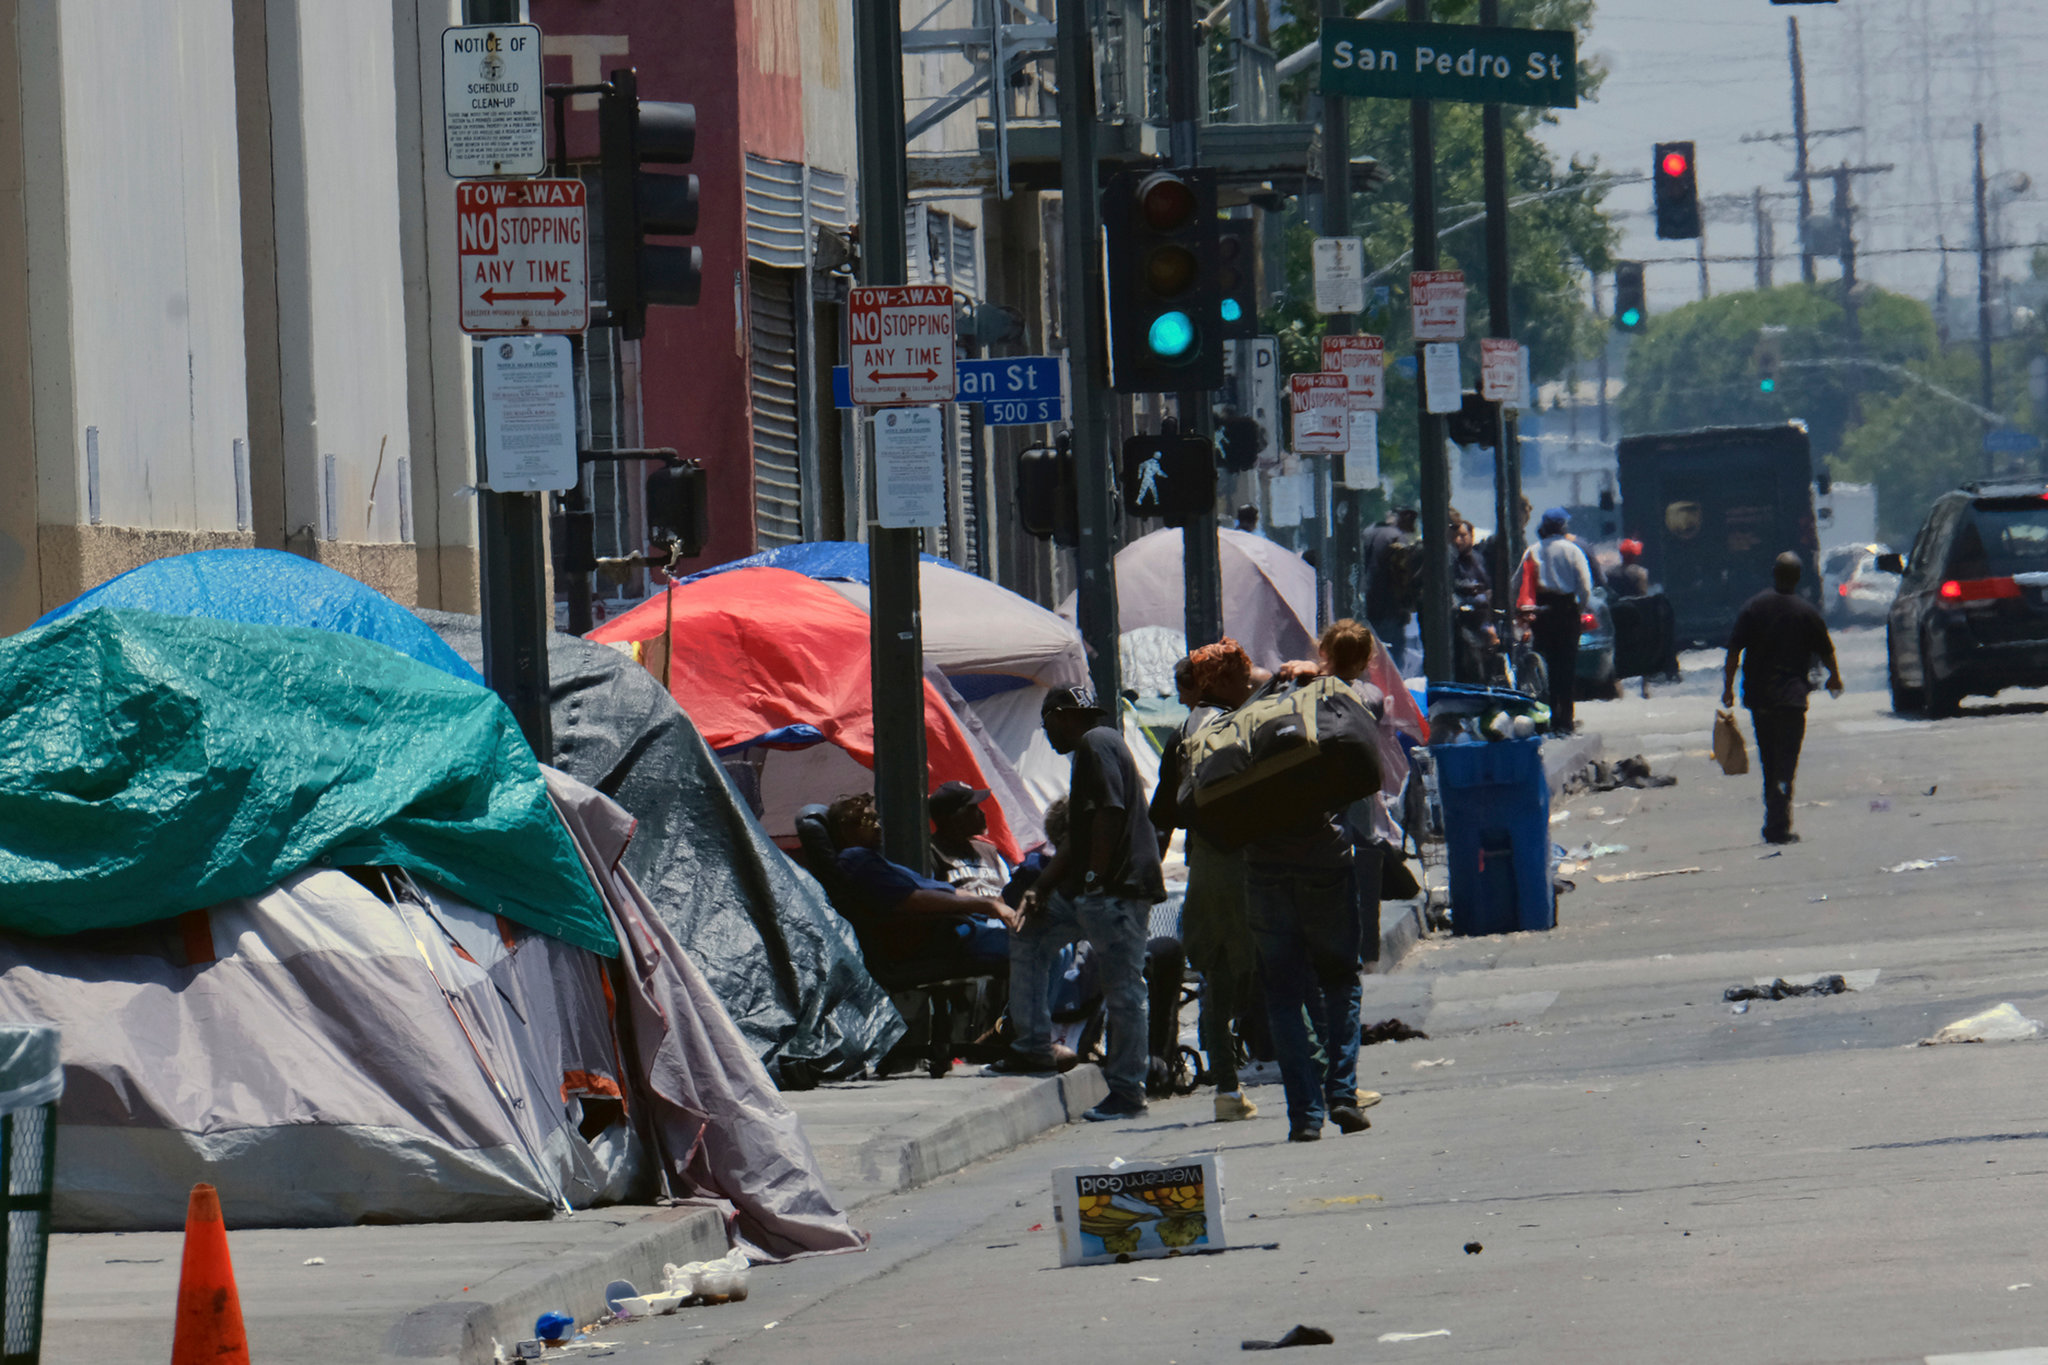 Ways To Improve Homeless Issues In California